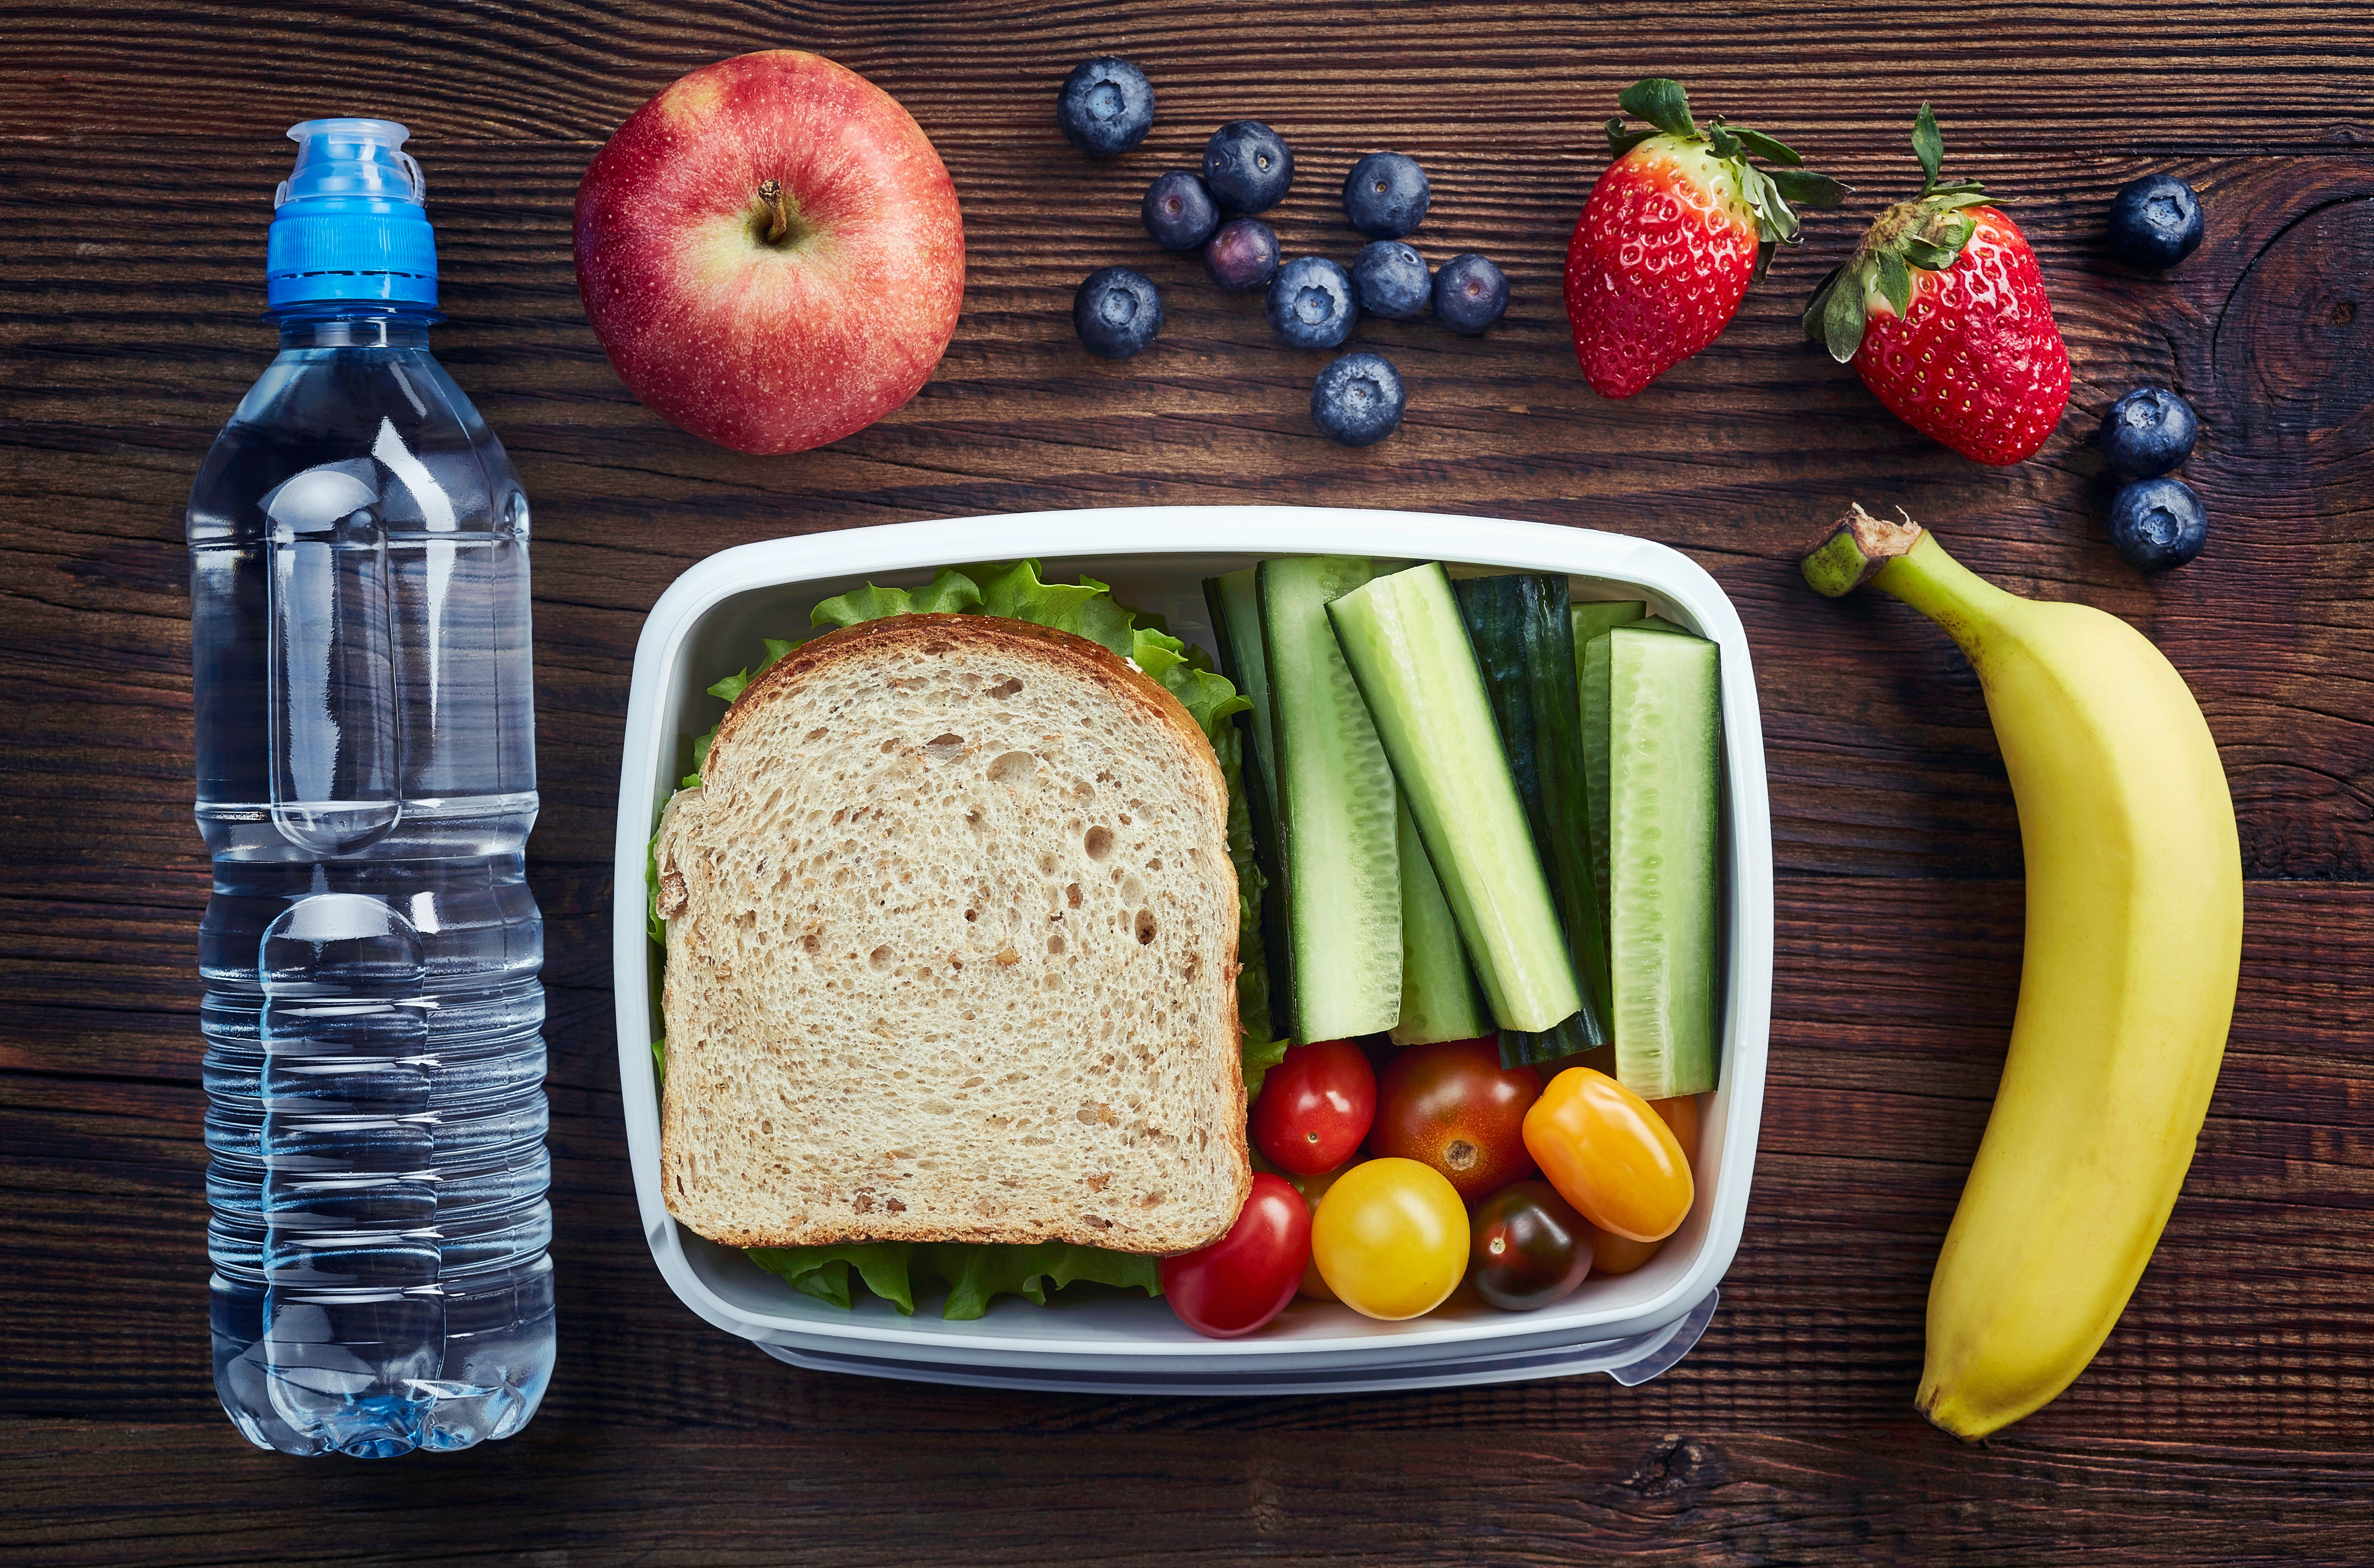 Back to work? Take lunch from home to save time and money – and boost your mood